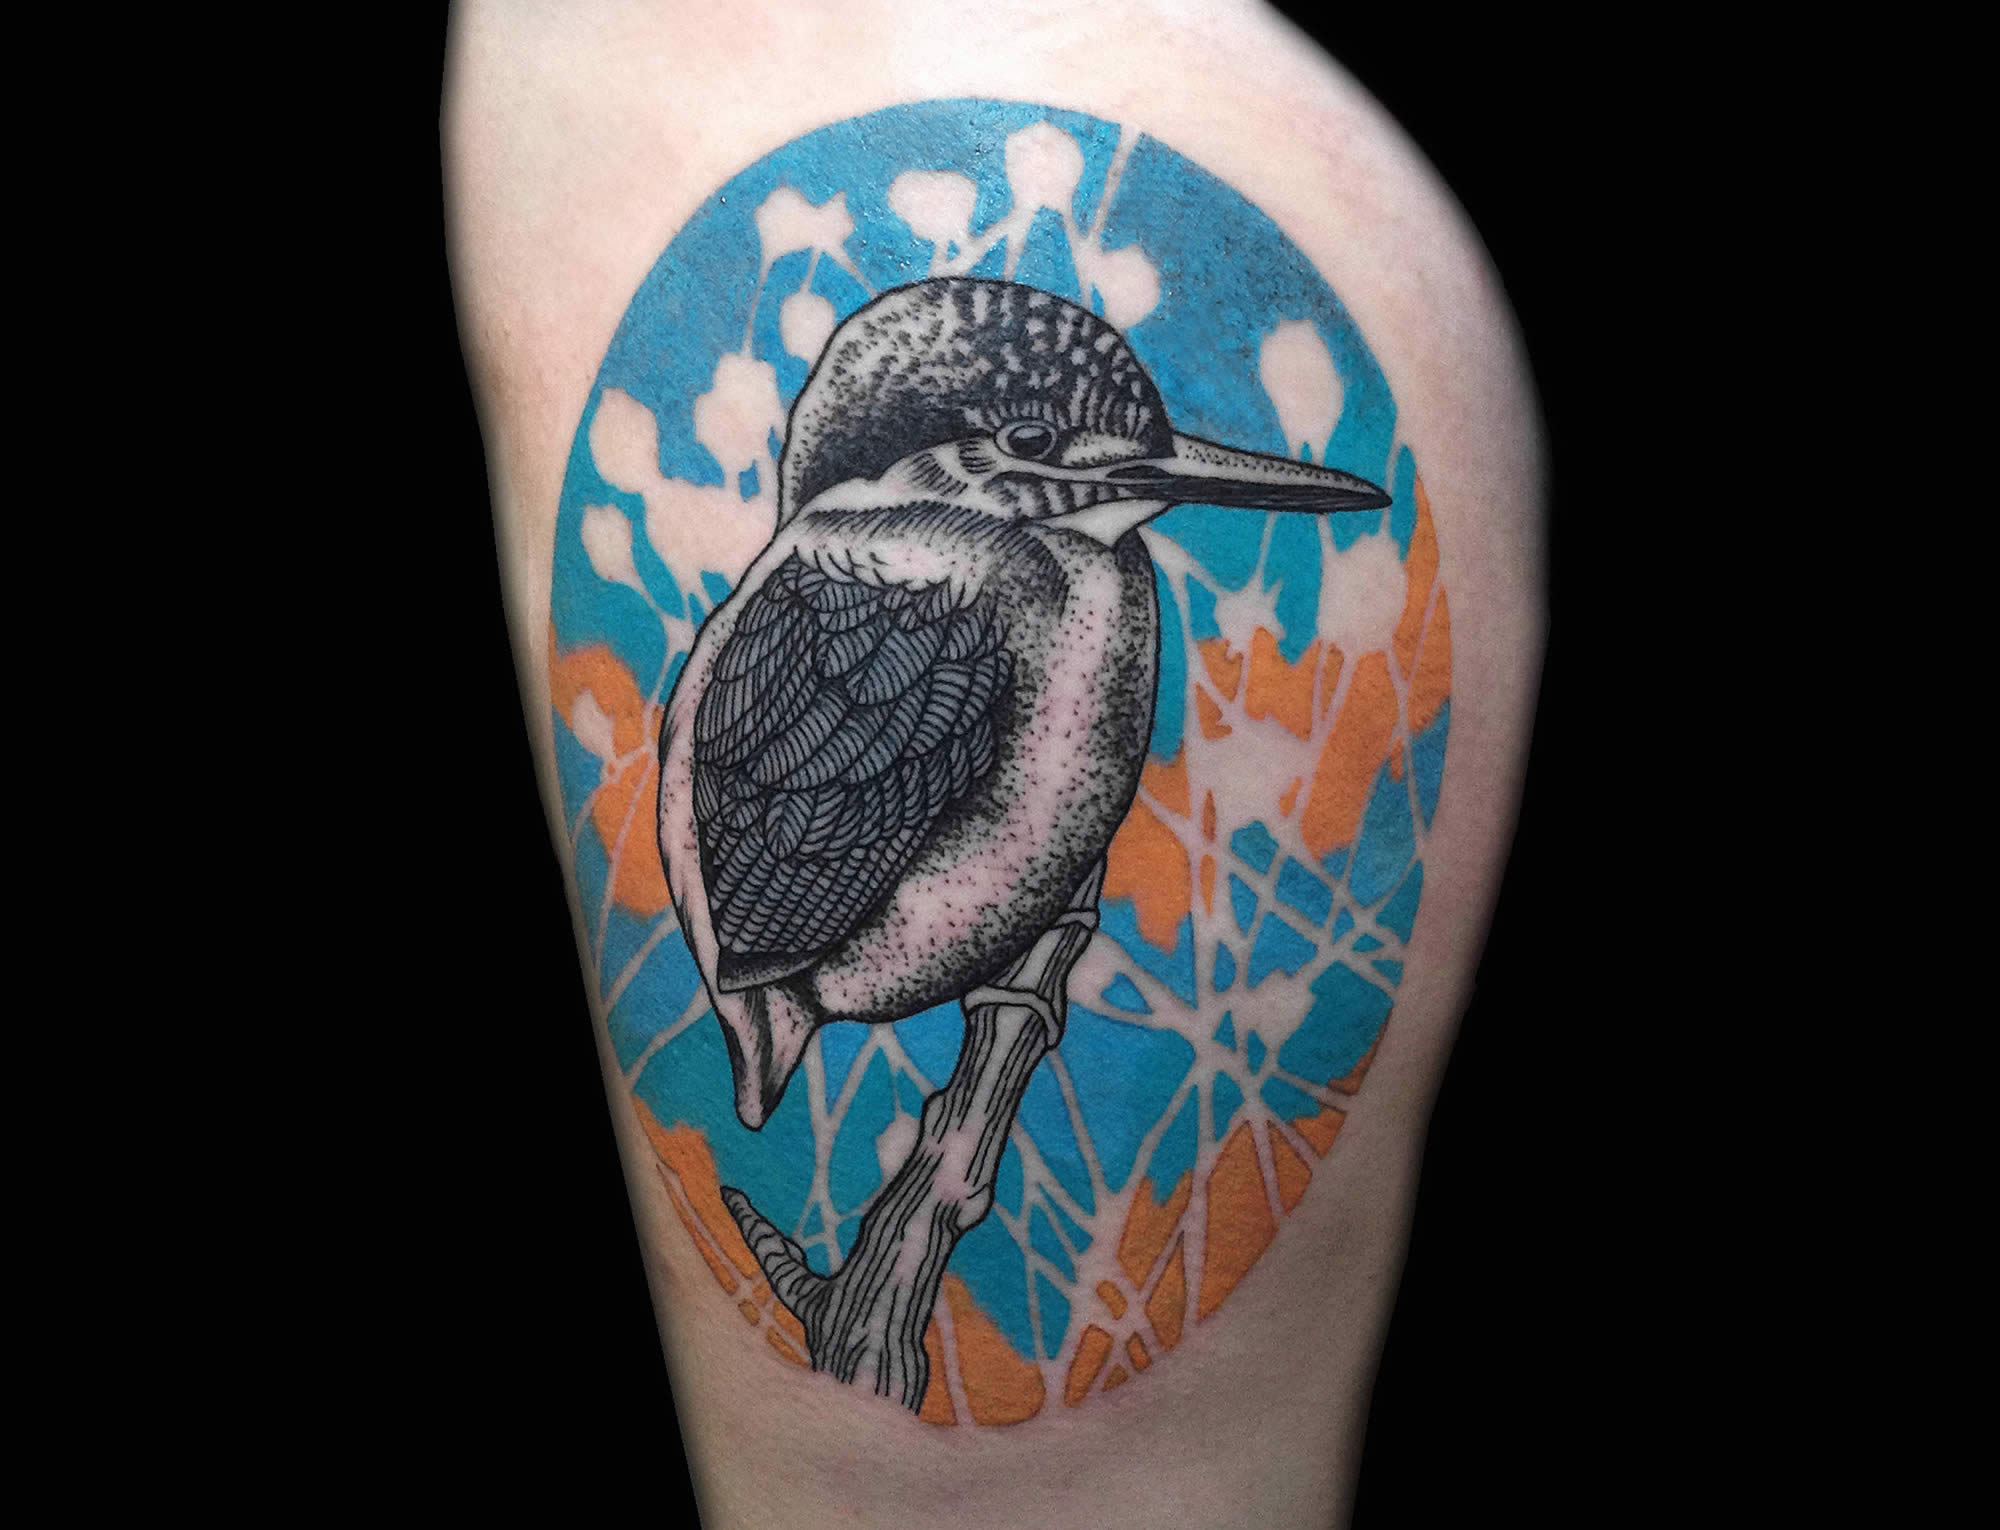 Vegan Tattoos: The art of Hannah Willison